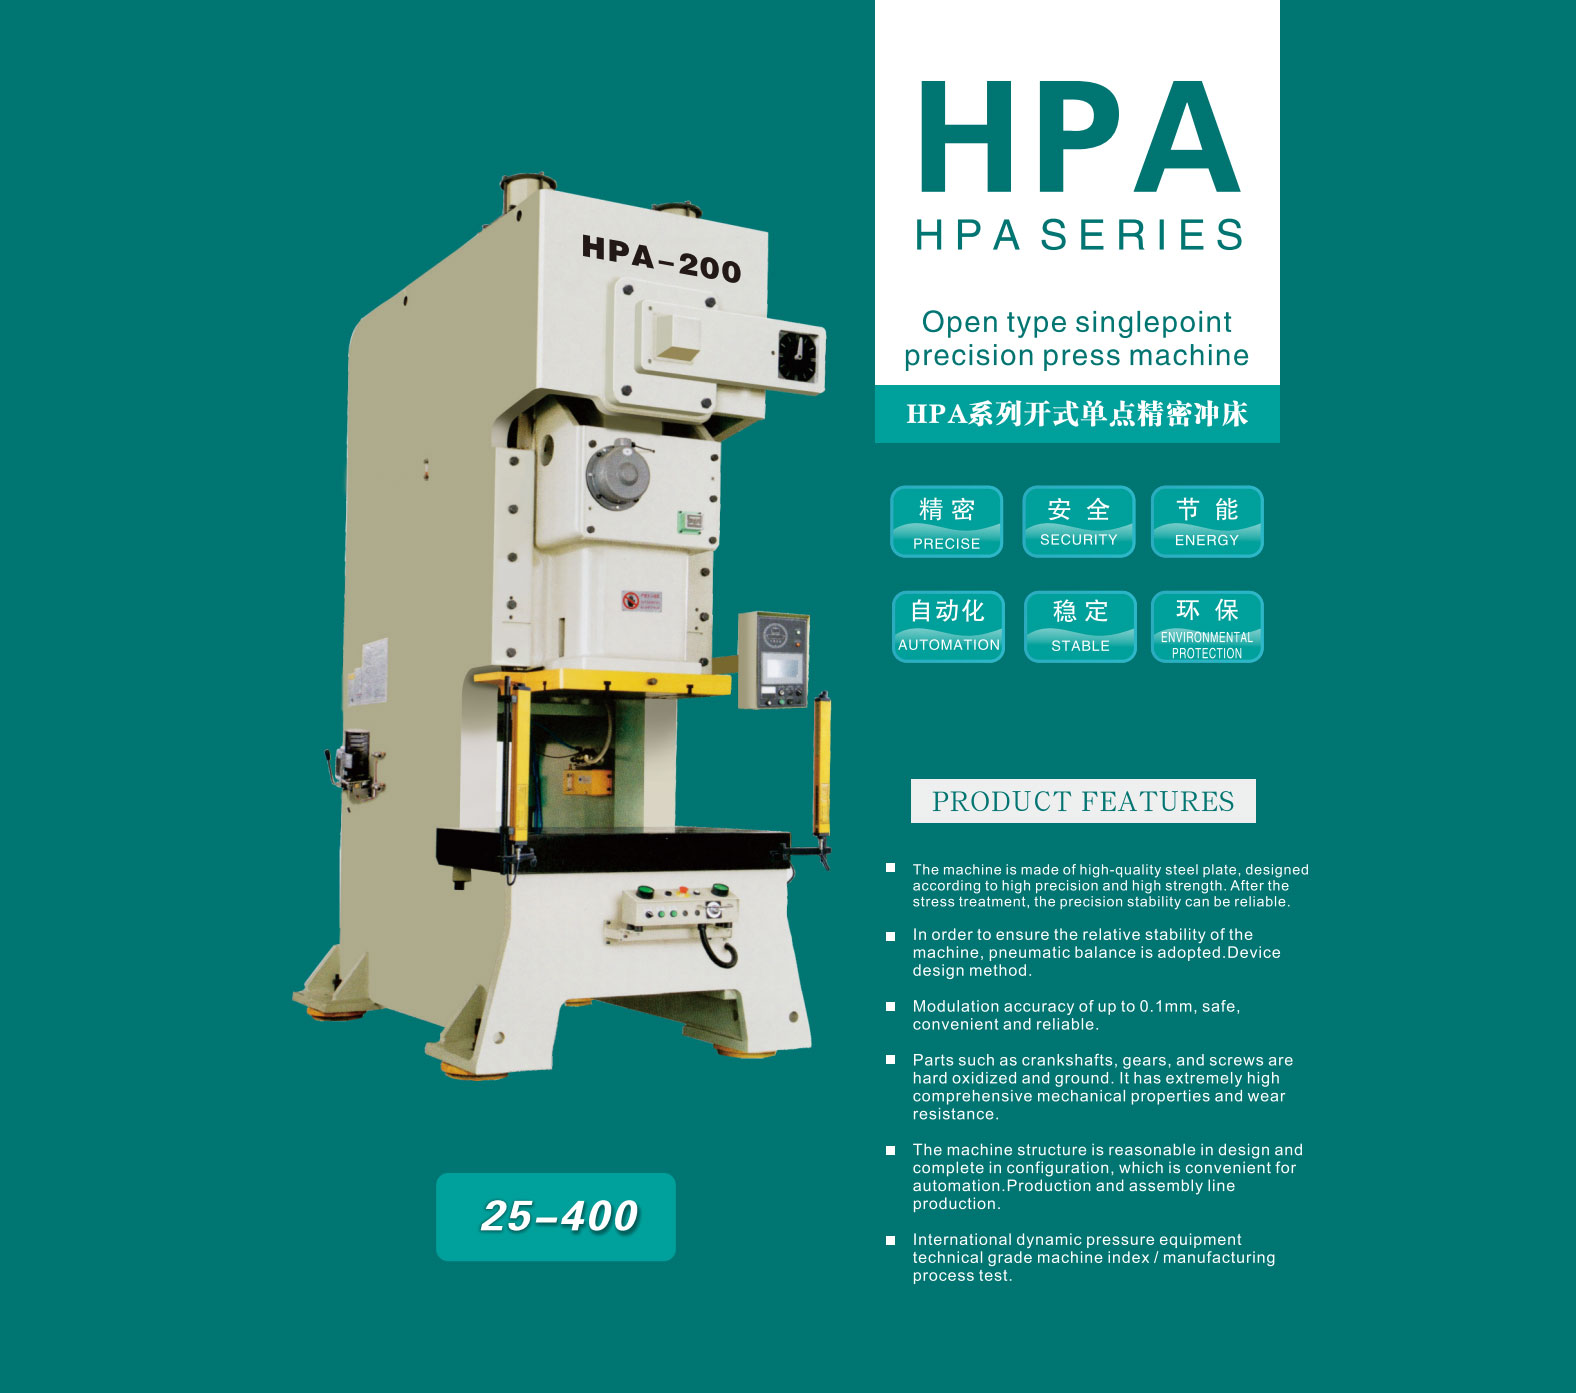 HPA-200